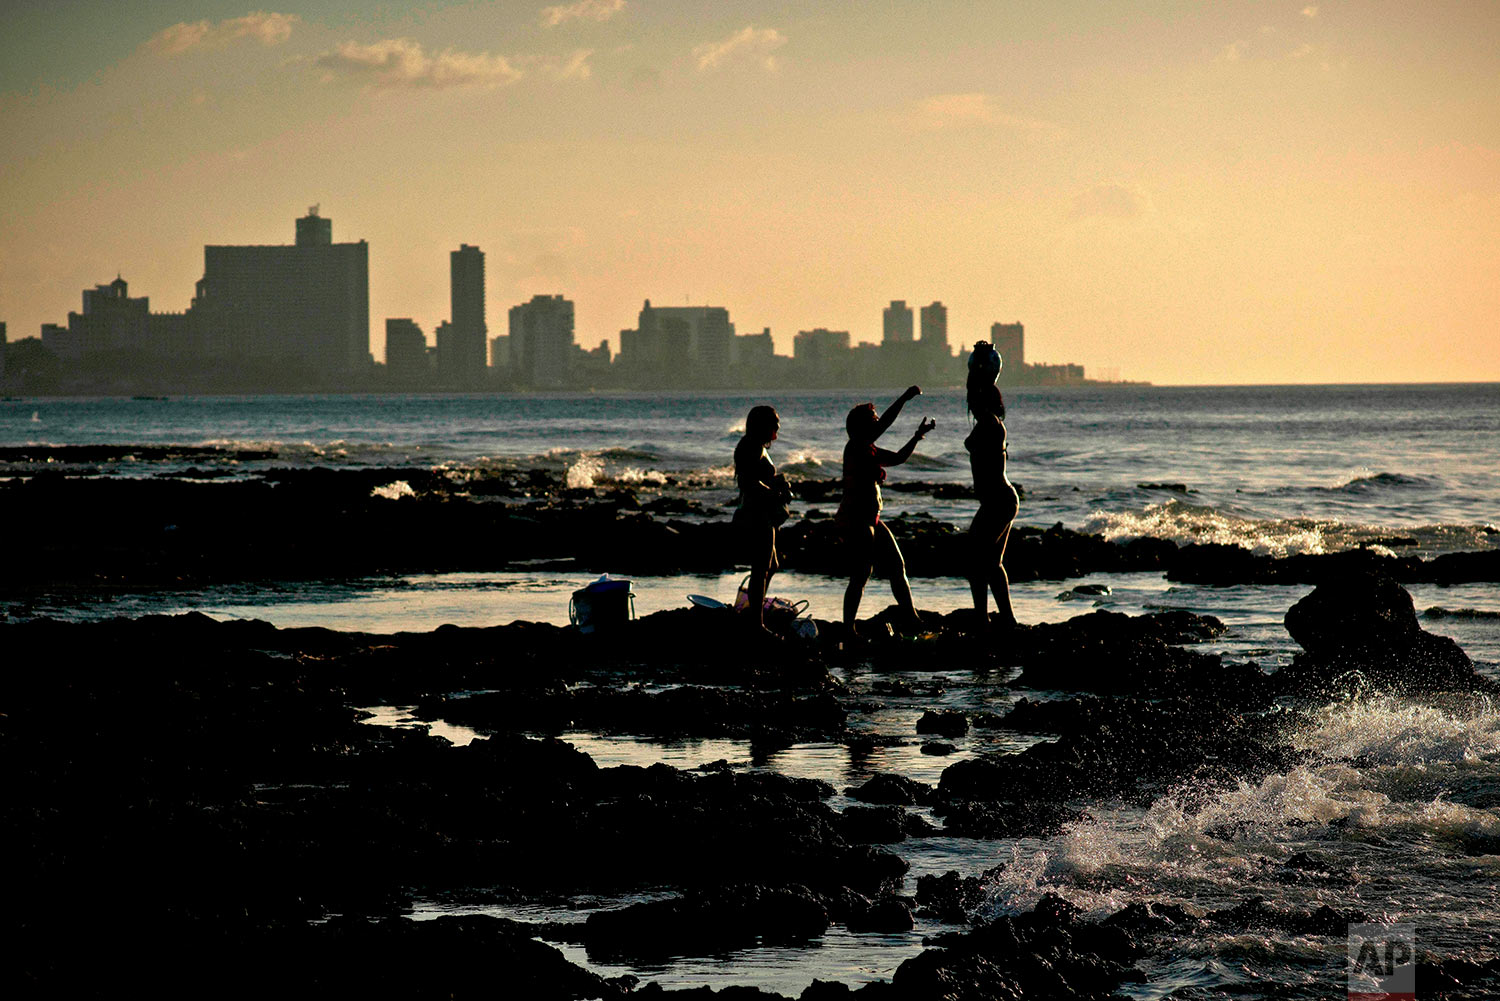 """In this April 14, 2018 photo, Santera Mailyn Lopez, center, performs a ritual with Mili Garcia Perez, right, and Zulay De Las Mercedes, on Chivo beach in Havana, Cuba. Mili and Zulay, who work at a restaurant, came to evoke the presence of """"Olokun,"""" a saint who according to Santeria lives in the sea and brings one health, prosperity and stability. (AP Photo/Ramon Espinosa)"""